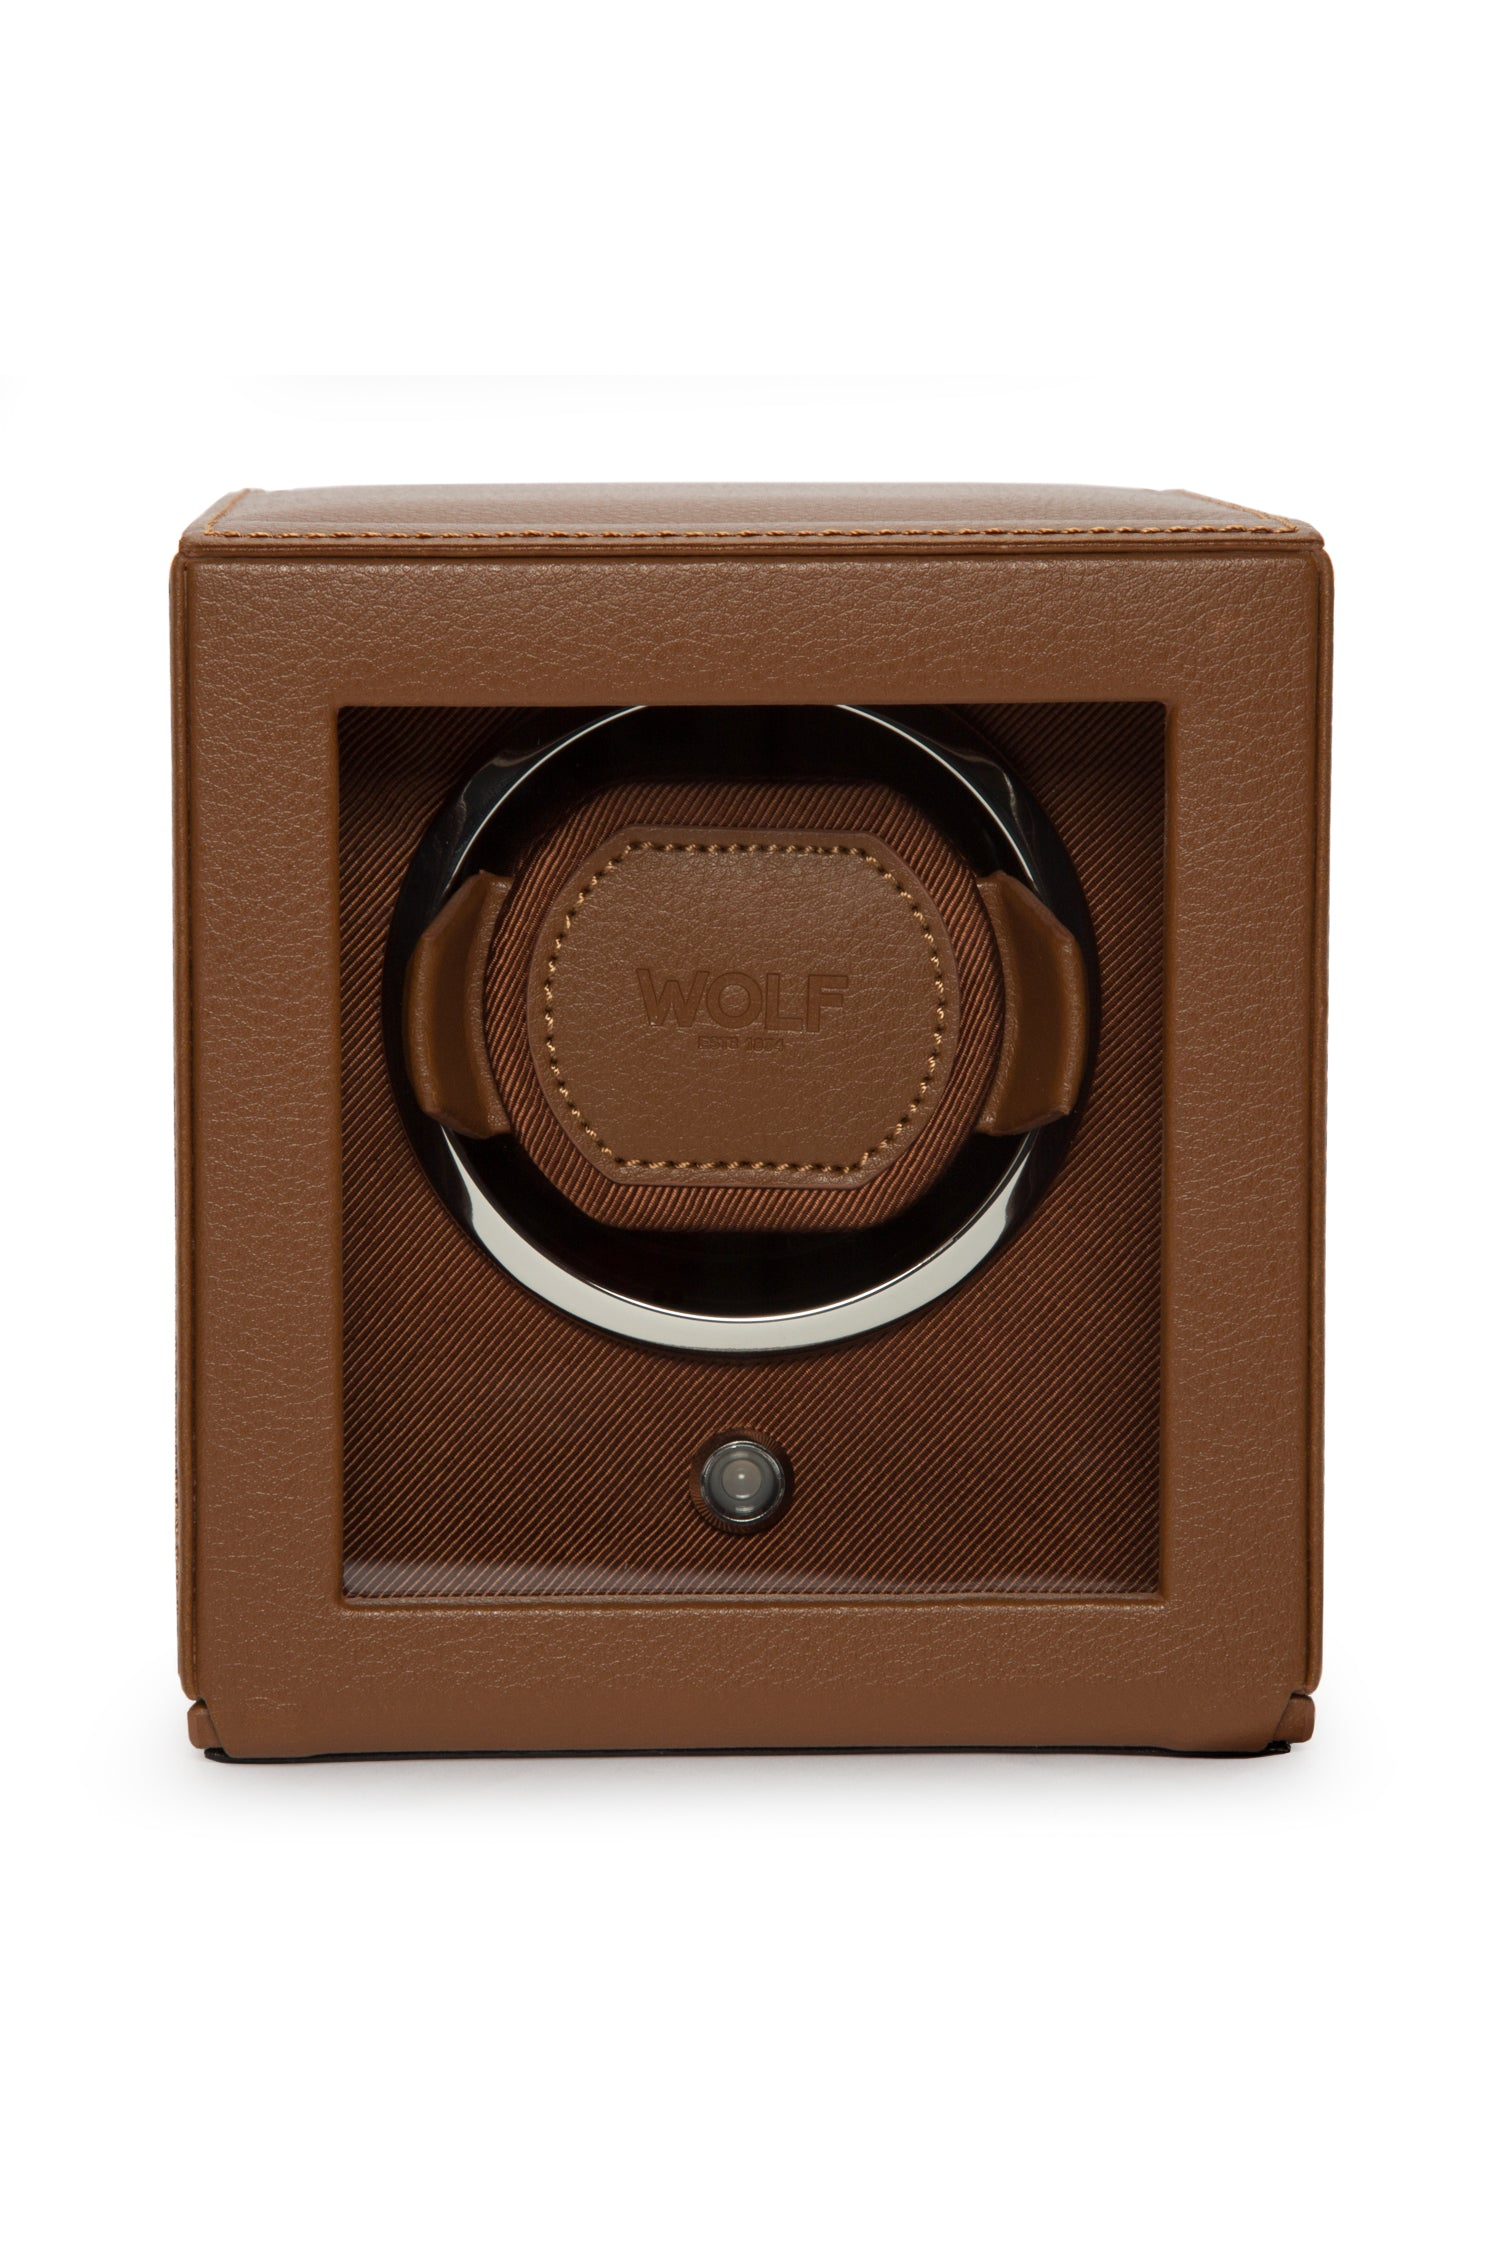 WOLF CUB Single Watch Winder with Cover in COGNAC